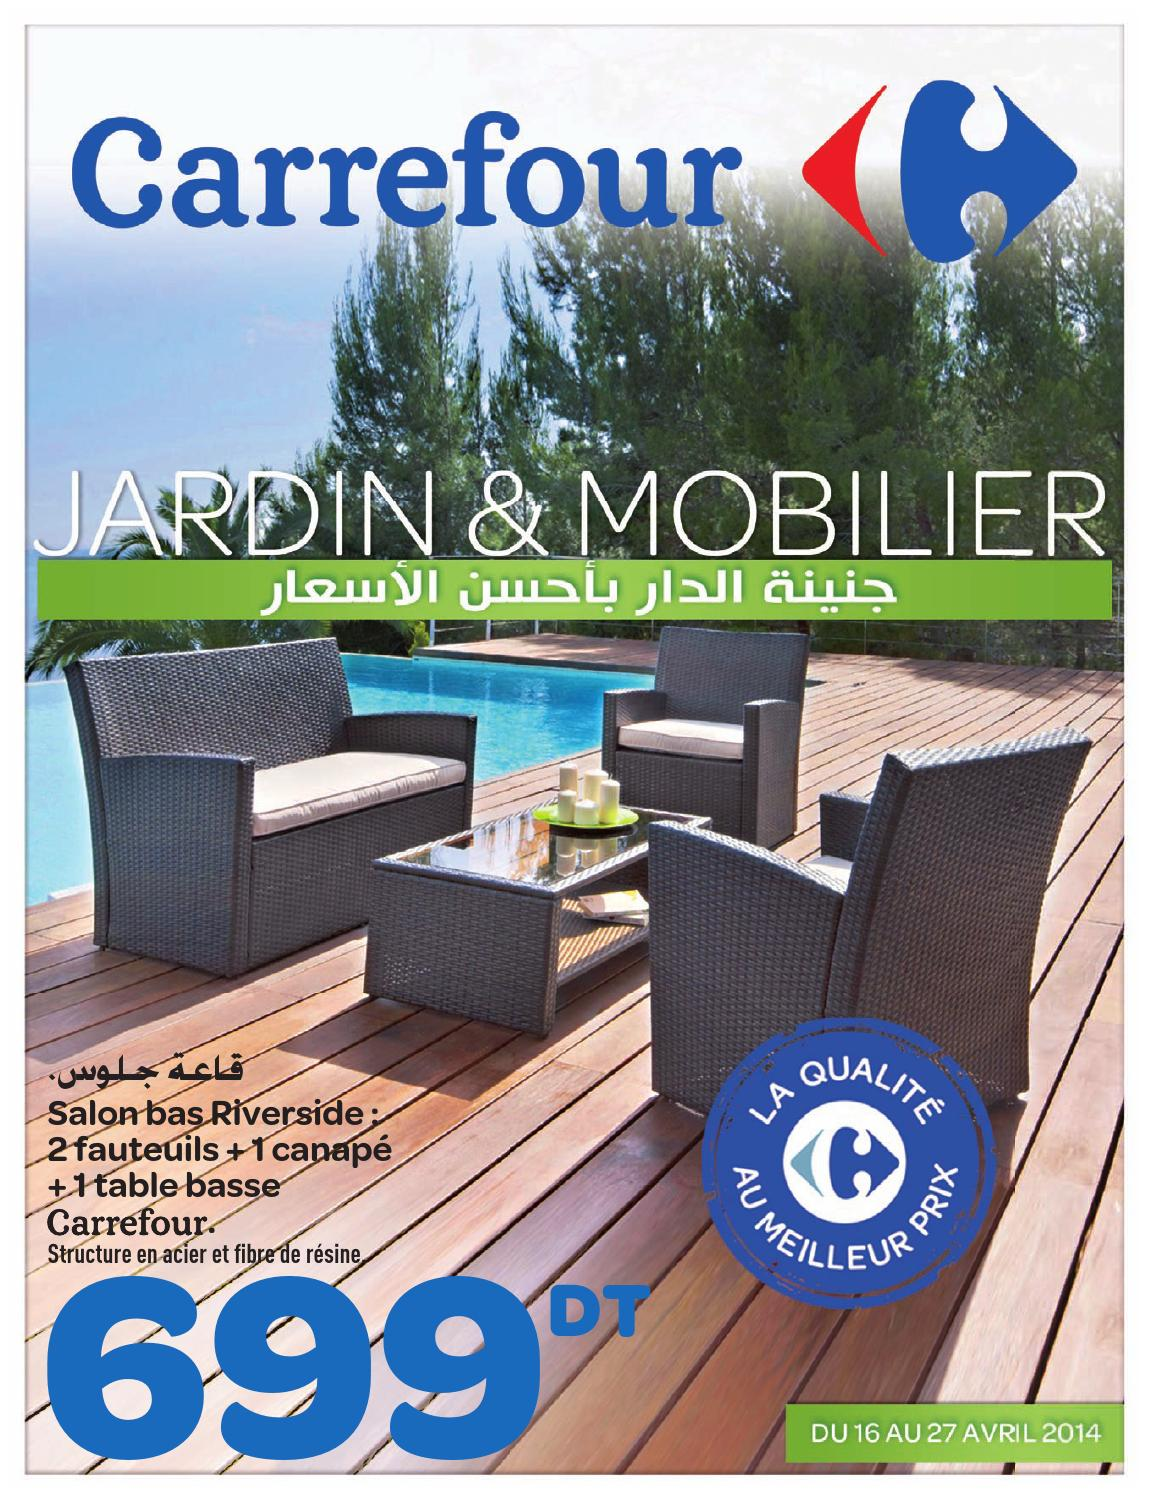 Catalogue carrefour jardin et mobilier by carrefour tunisie - Chaise pour salon de jardin ...